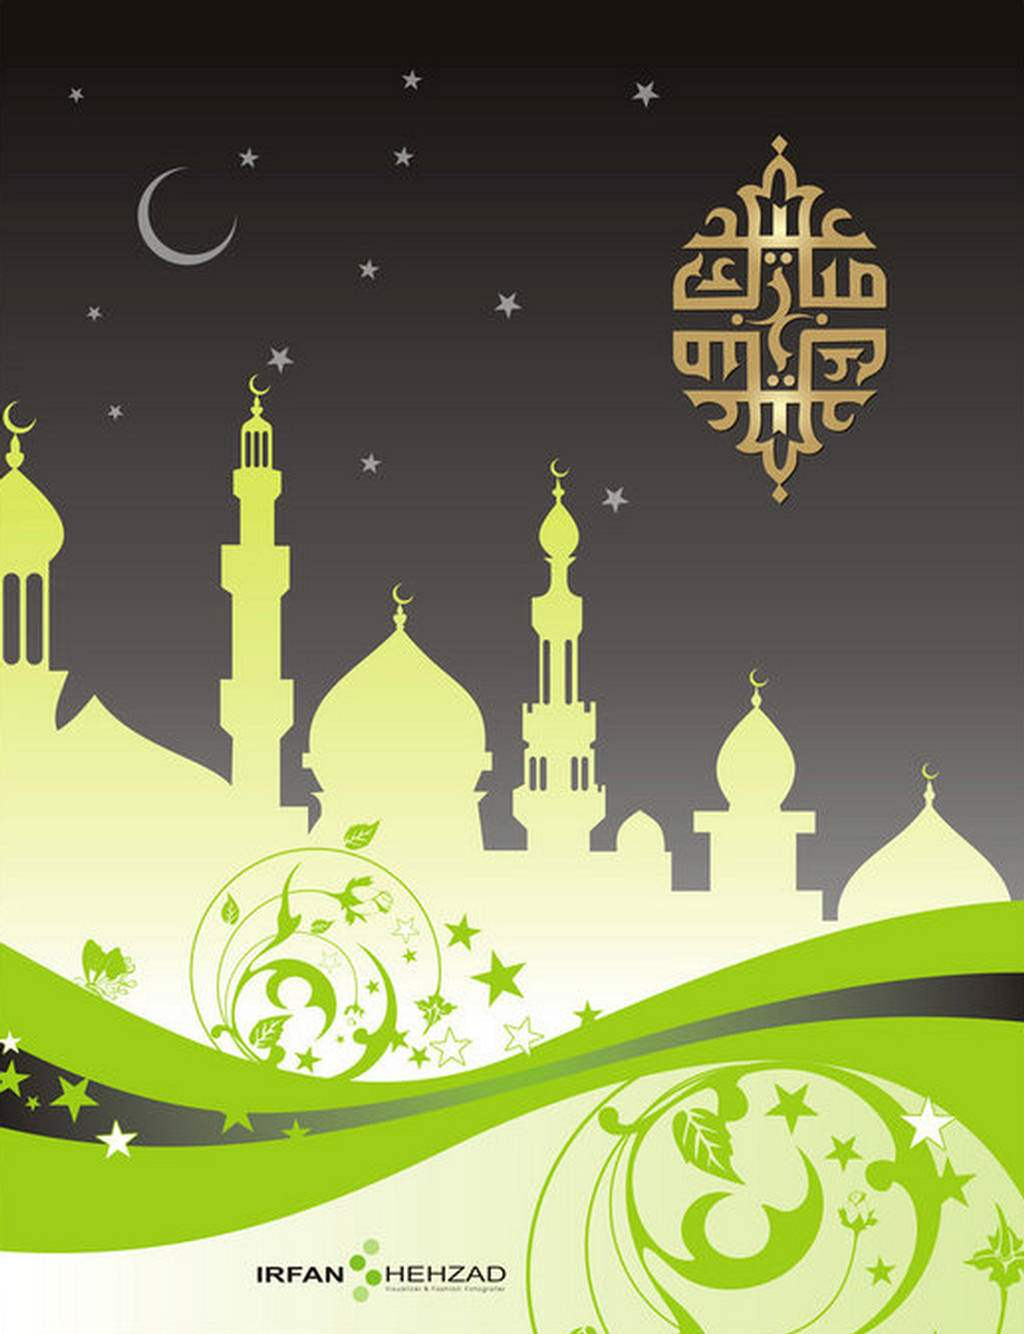 Download eid mubarak 2015 greeting cards and messages page 3 eid mubarak 2015 greeting cards designsmag 03 m4hsunfo